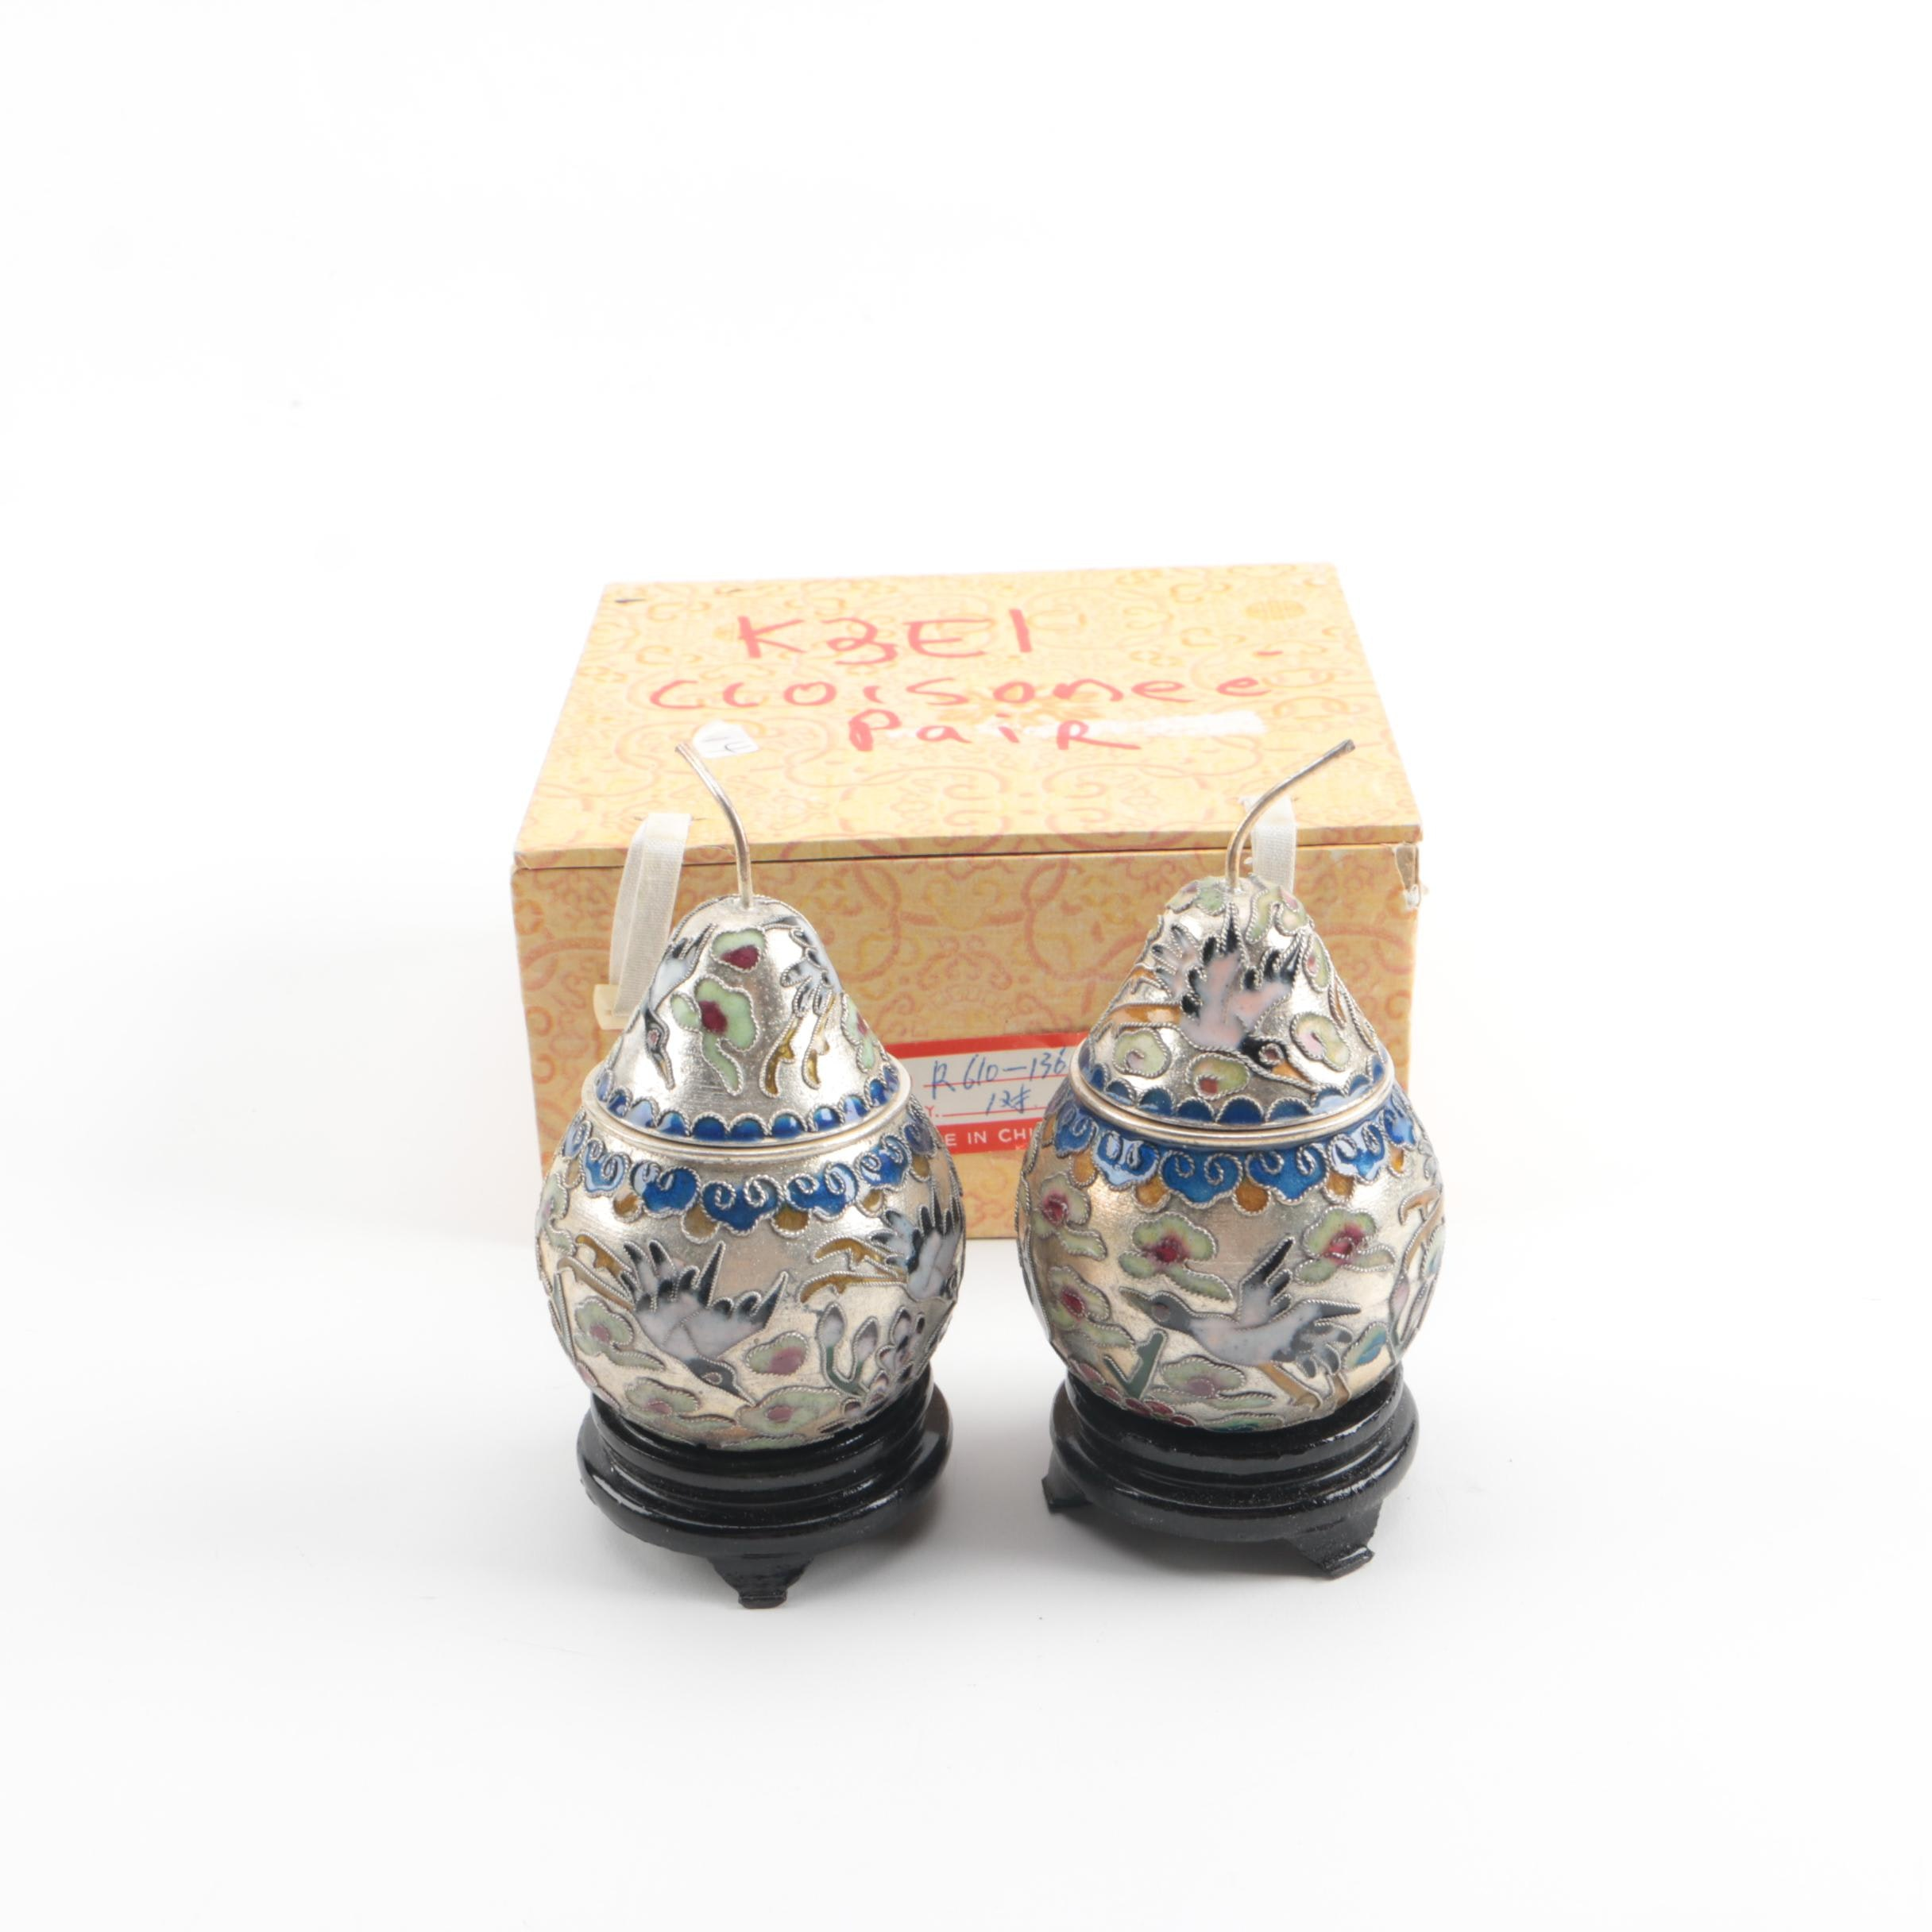 Chinese Cloisonné and Silver Tone Pear Boxes with Stands